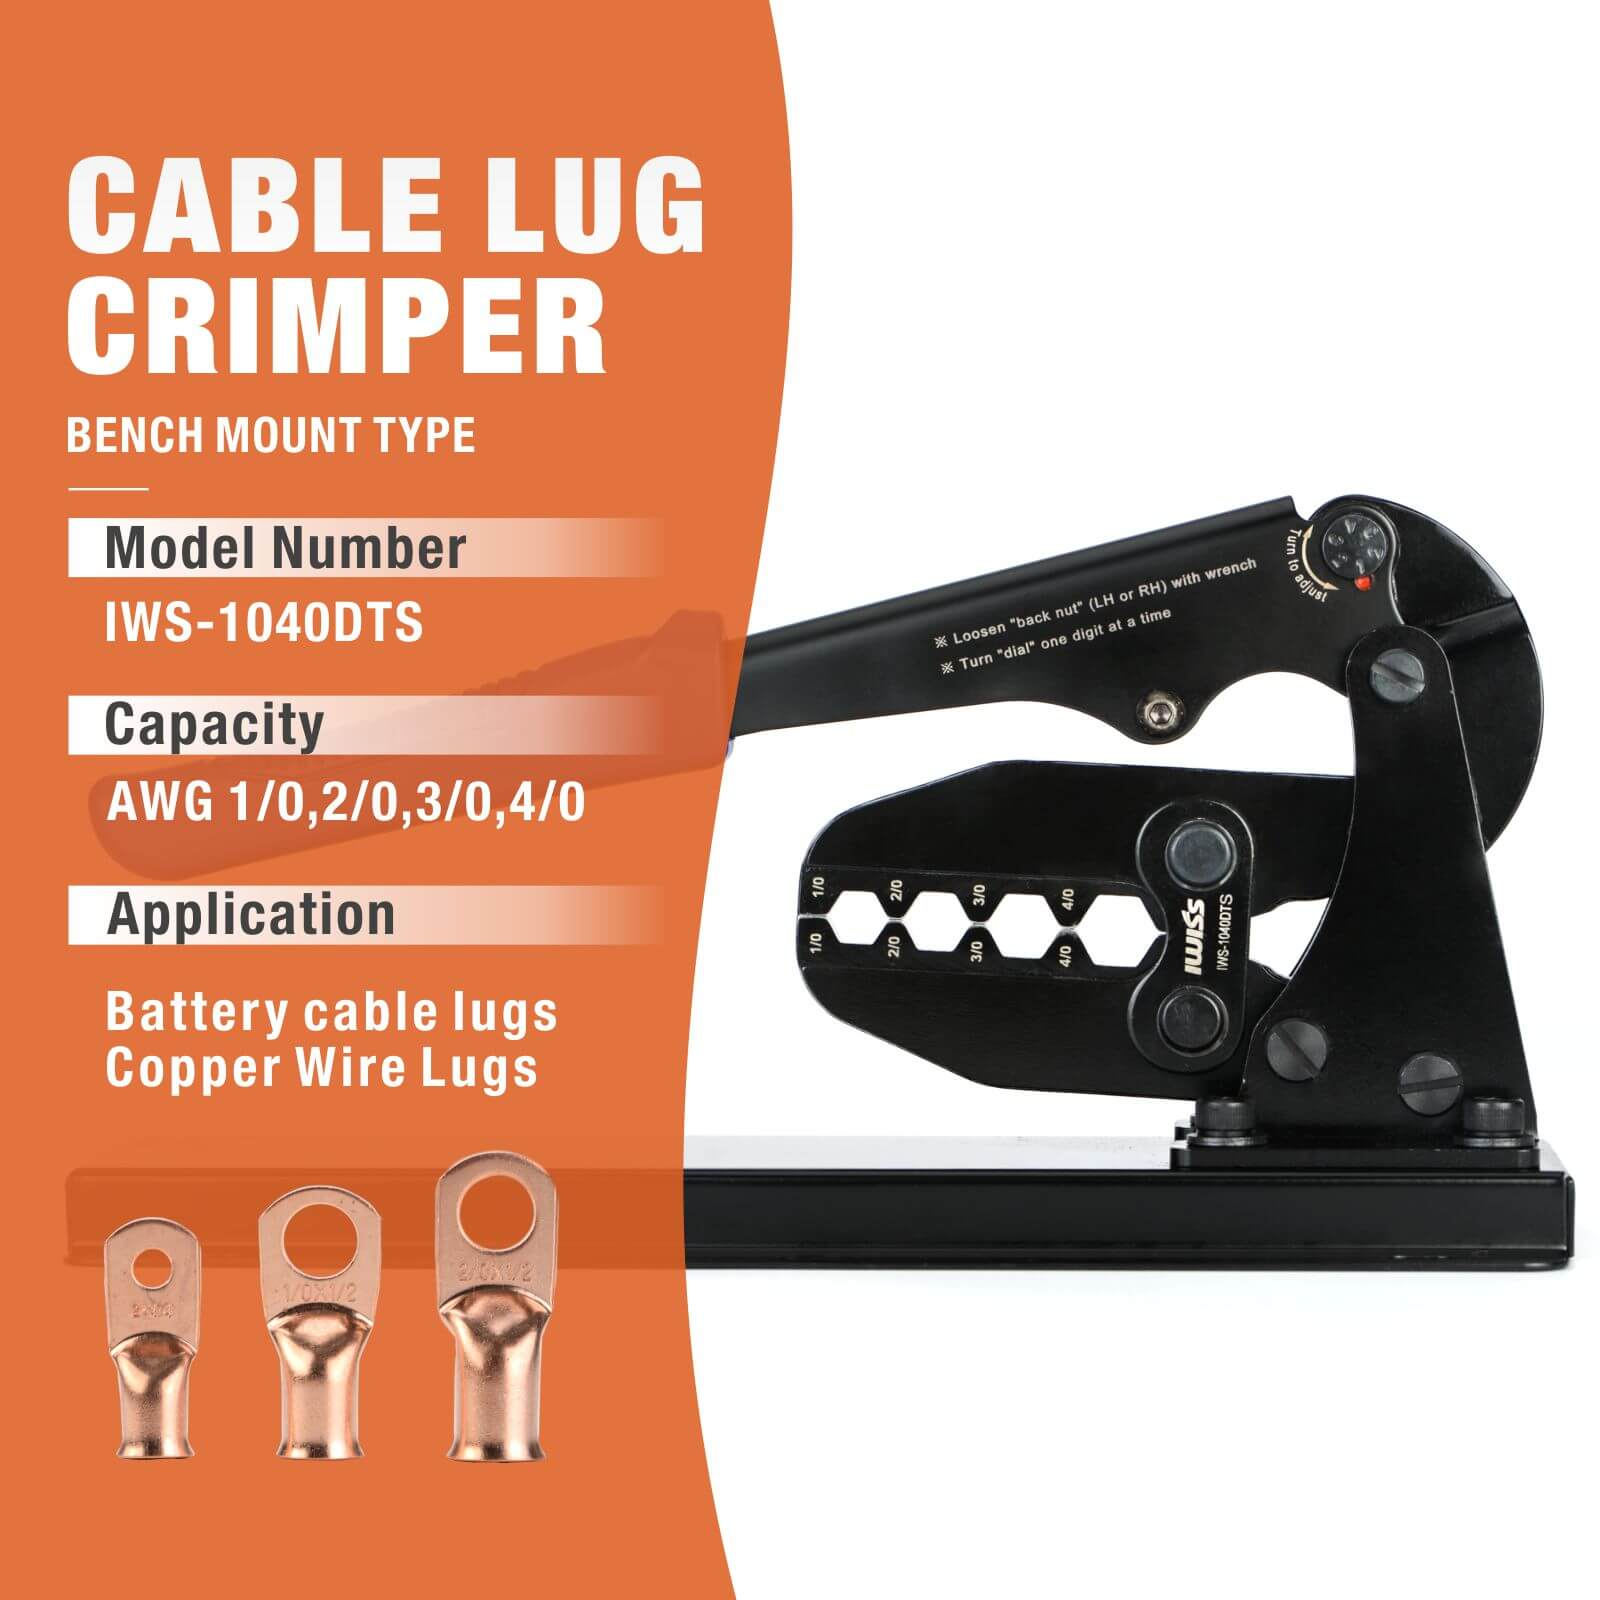 Bench Mount Type Cable Lug Crimper For Battery Cable Lugs AWG 1/0, 2/0, 3/0, 4/0